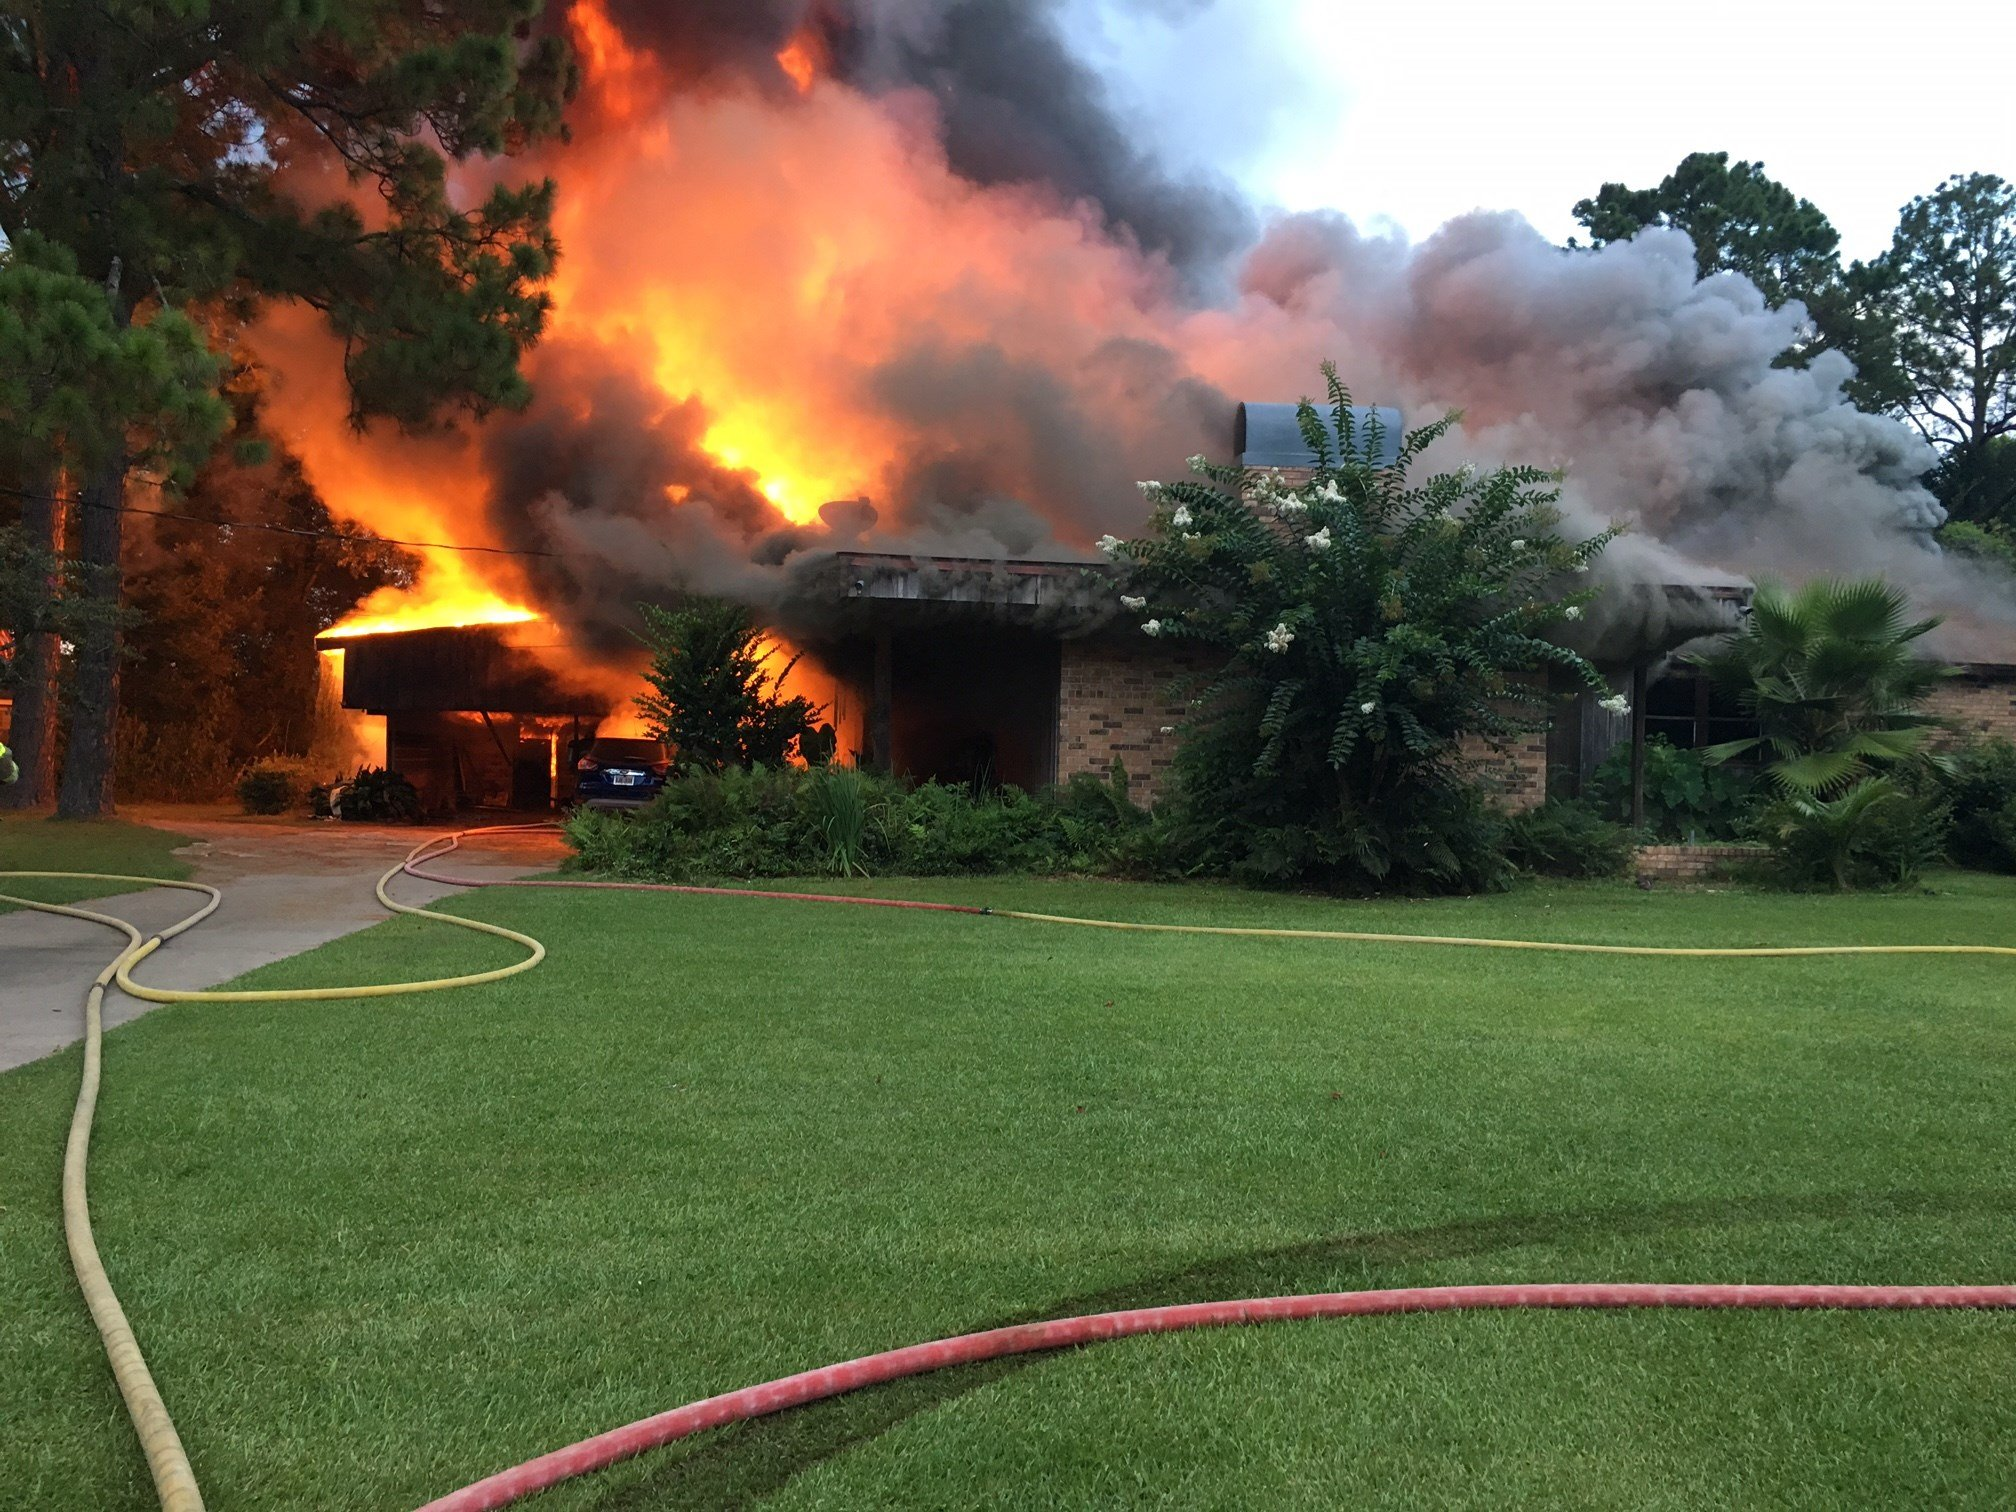 Fire tears through Sunset residence / Courtesy: Chadwick Primeaux